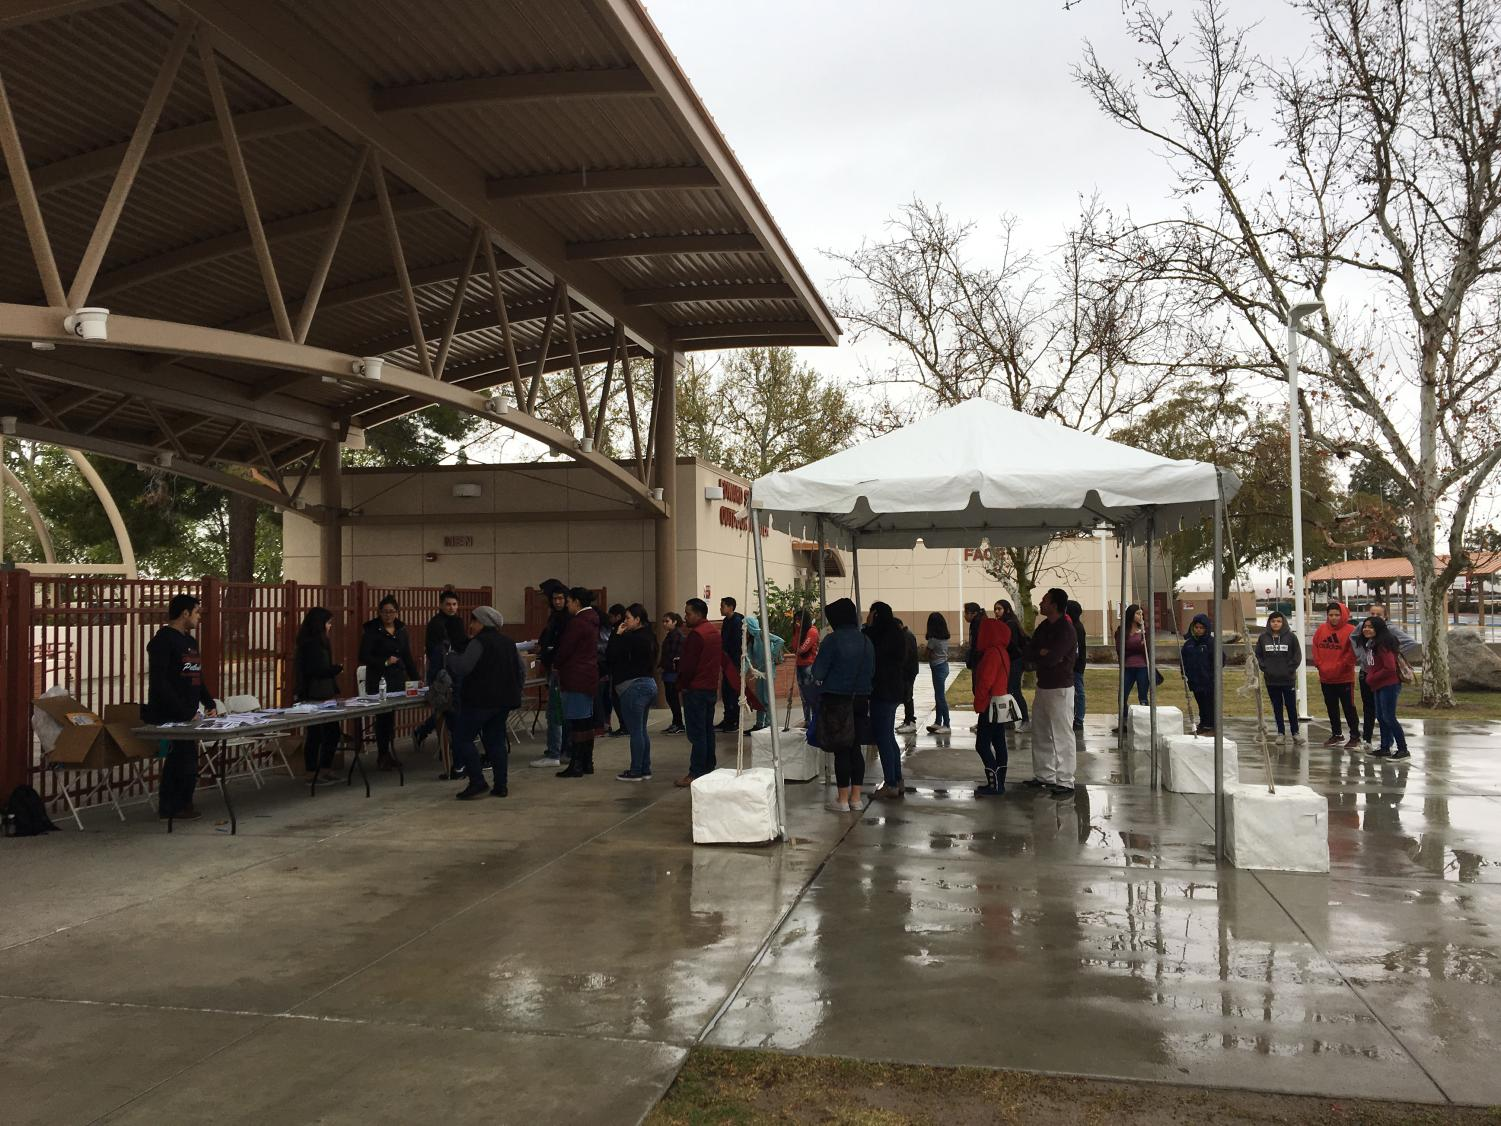 Students and volunteers endure the rain while registering for the second annual STEM and Pre-Health Conference at Bakersfield College.